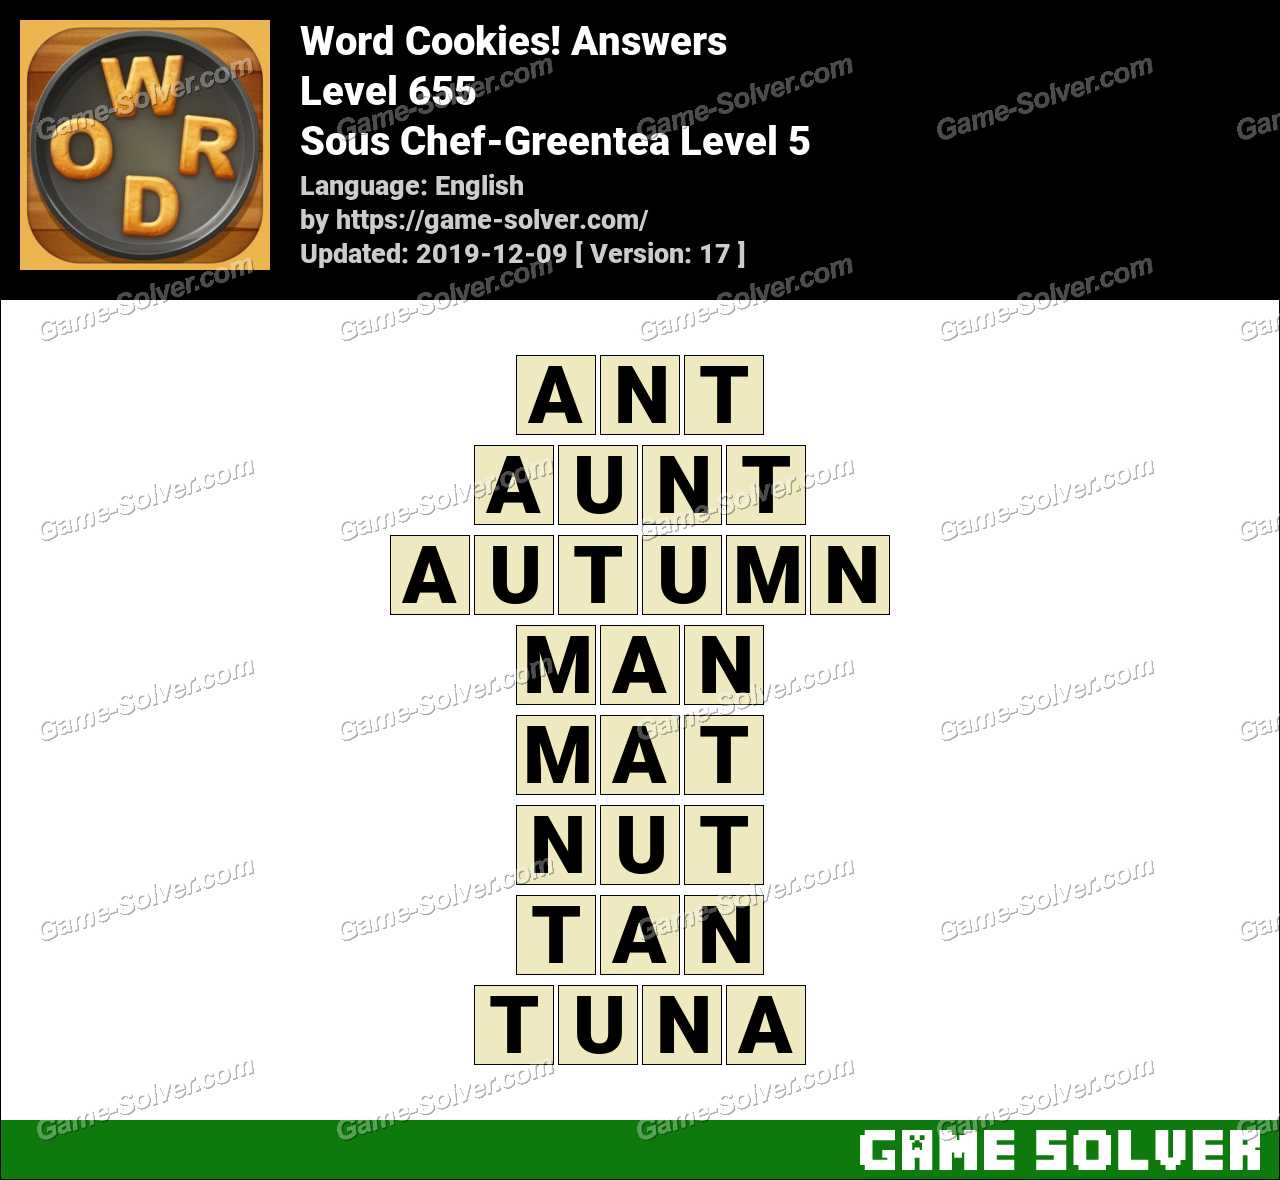 Word Cookies Sous Chef-Greentea Level 5 Answers